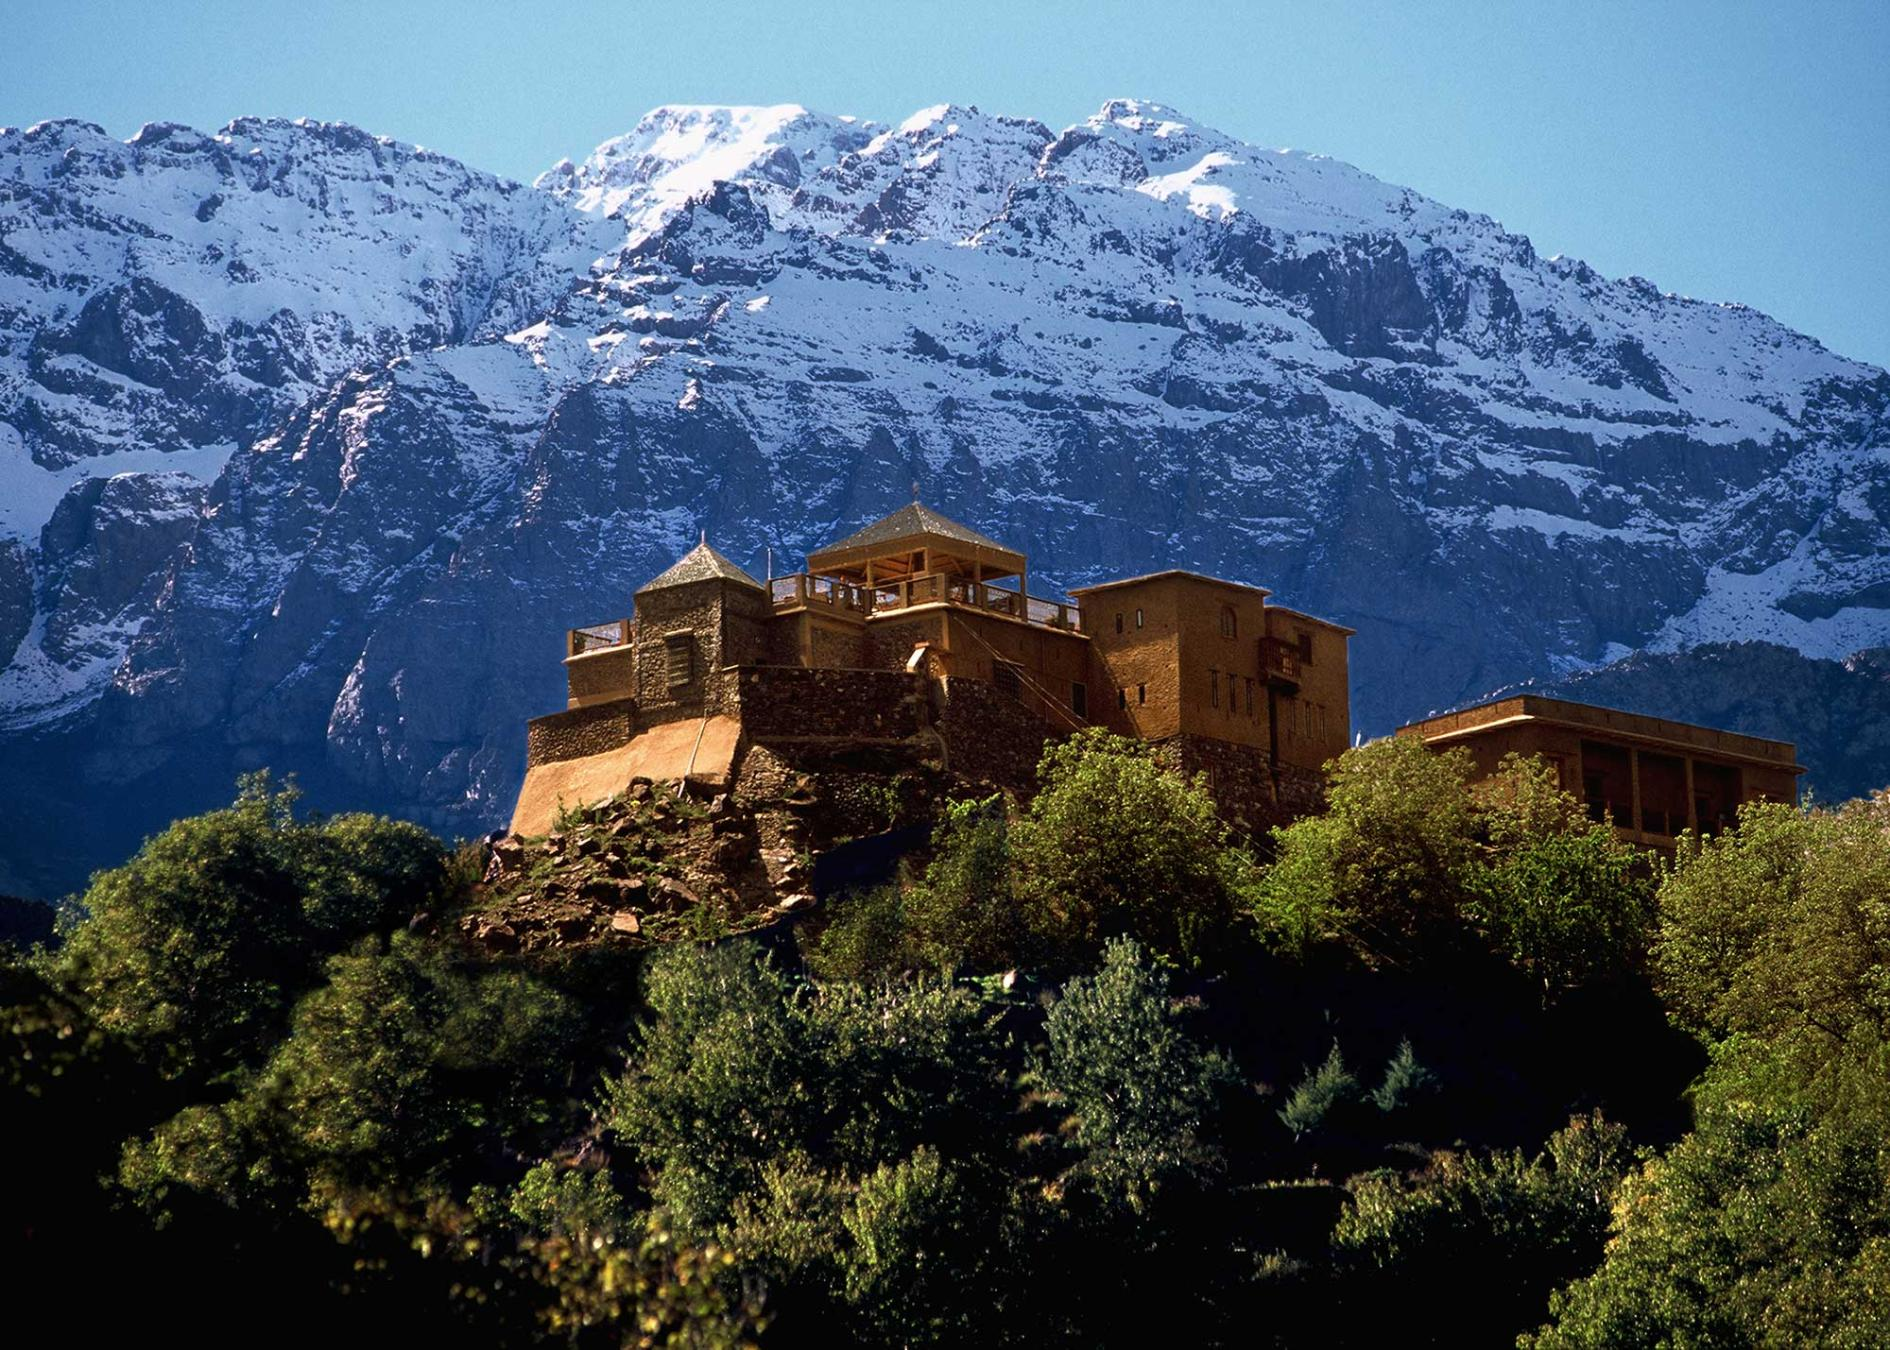 kasbah-lodge-mountains.adapt.945.2.jpg